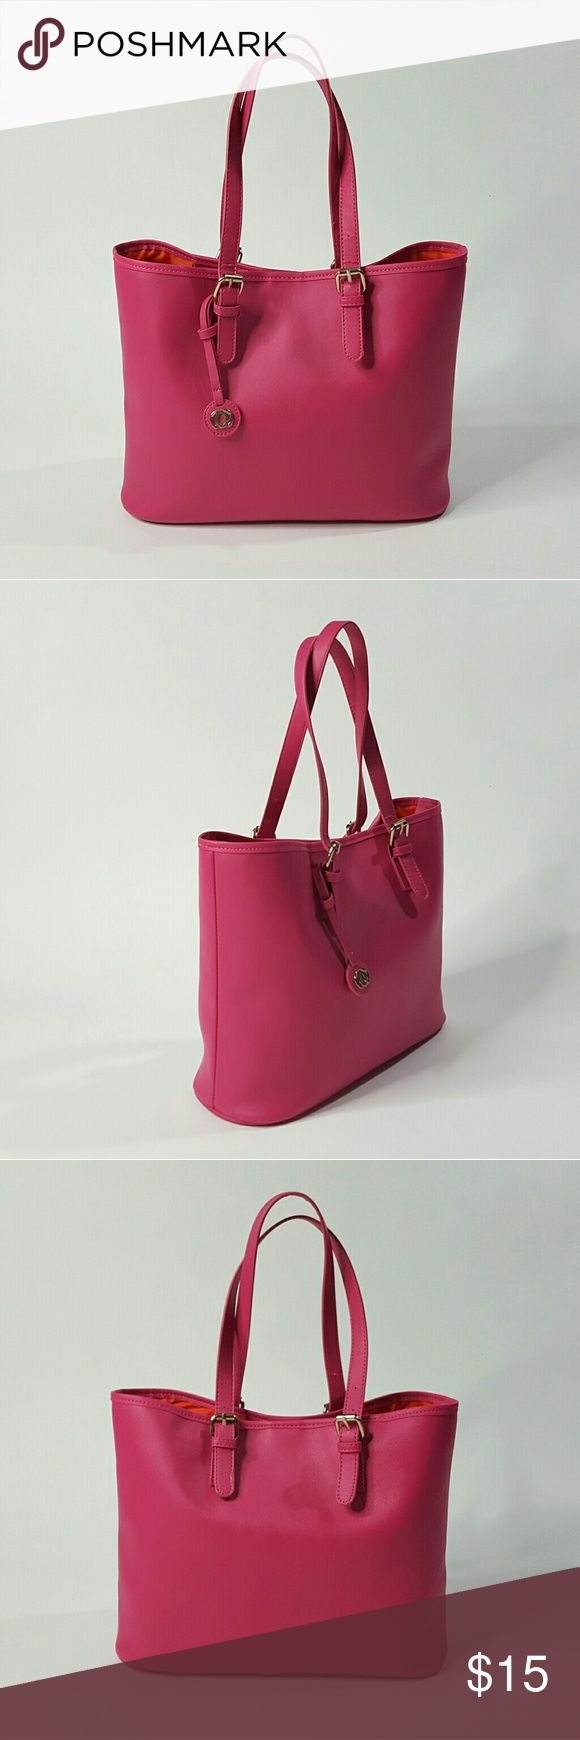 """Tote Bag Pink & Orange Handbag Preloved  Height: 11"""" Width: 5 1/4"""" Length: 14 1/4"""" Strap length: 25 1/2"""" Strap width: 3/4""""  Details: Faux leather, slughtly stiff, not soft.  Gold metal detail. Two inside pockets with one zipper compartment. Metal clasp for closure. Lining is orange nylon.  Adjustable straps.  Bag in great condition.  Barely used. ?? Bags Totes"""